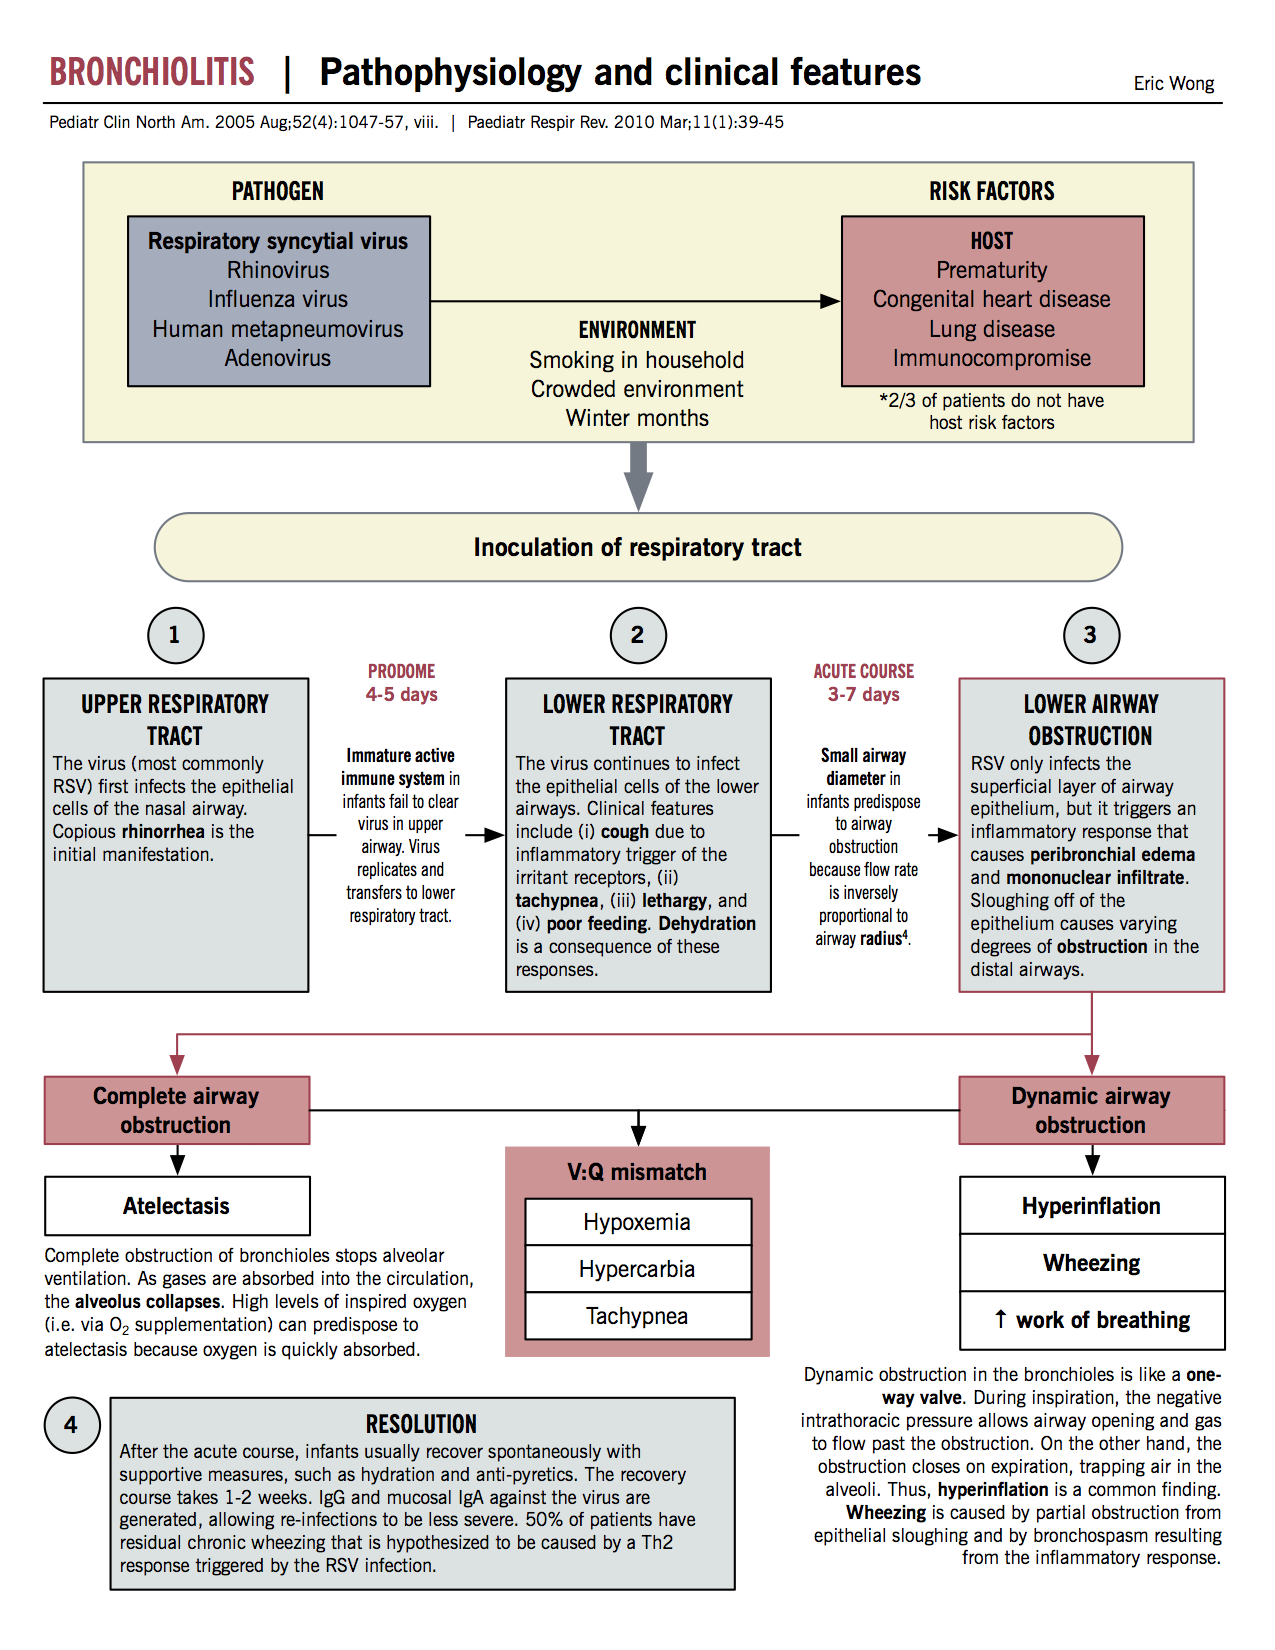 McMaster Pathophysiology Review - awesome resource to ...